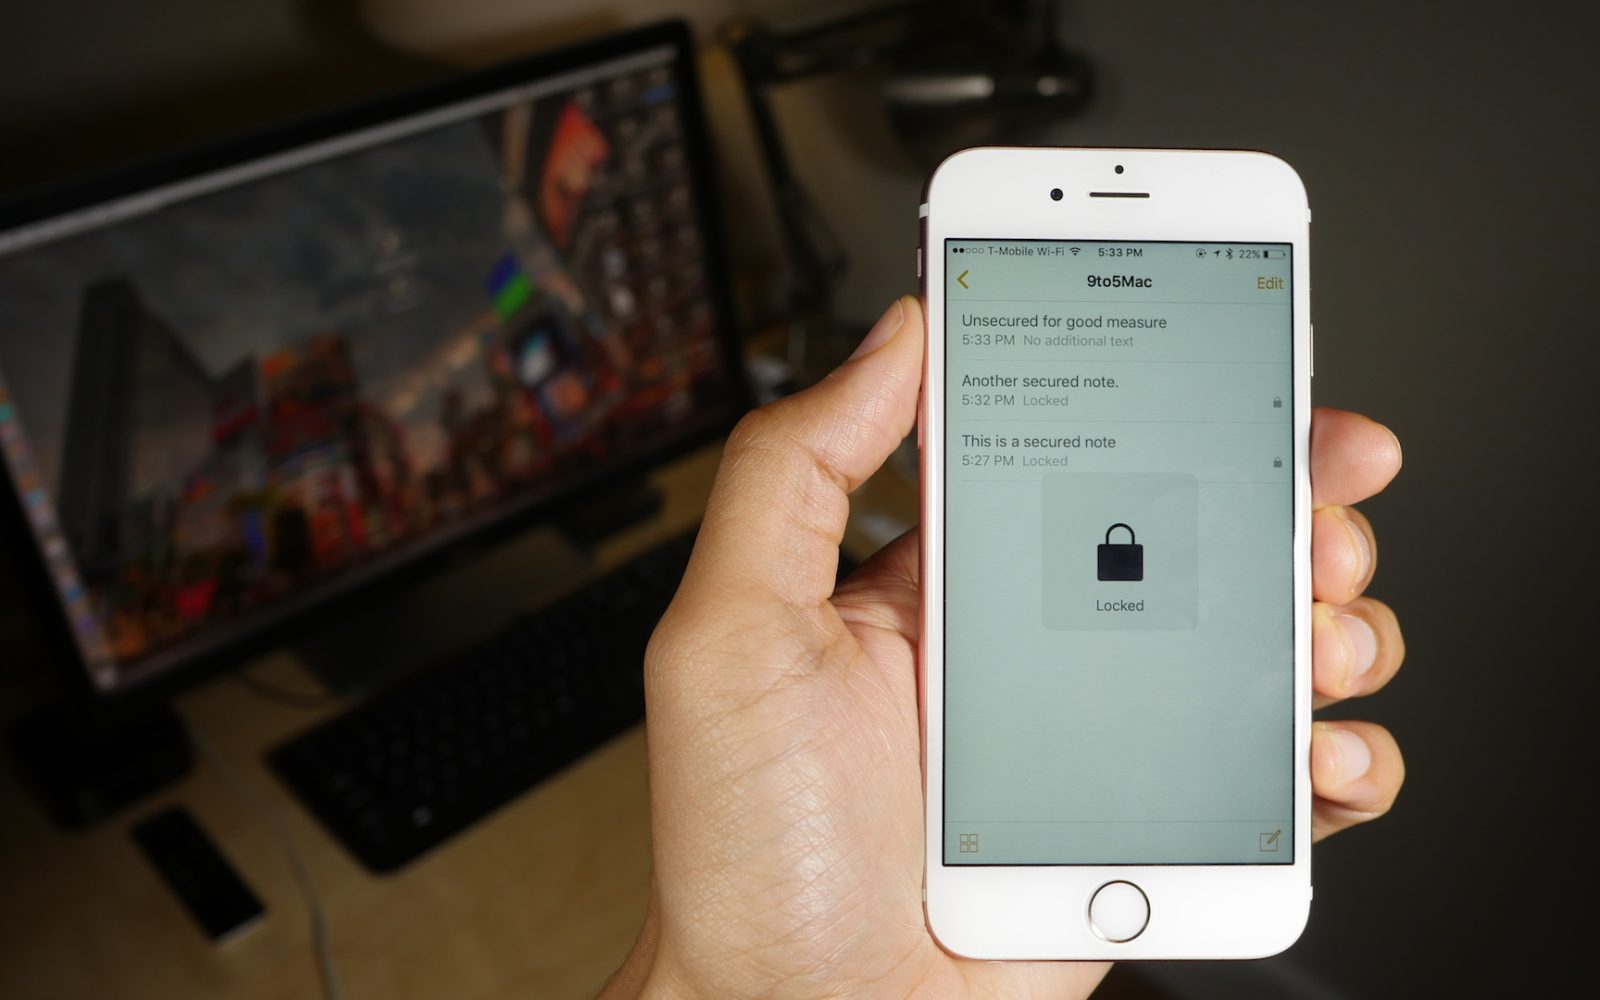 How-To: Set up and use password-protected Notes on iOS 9 3 [Video